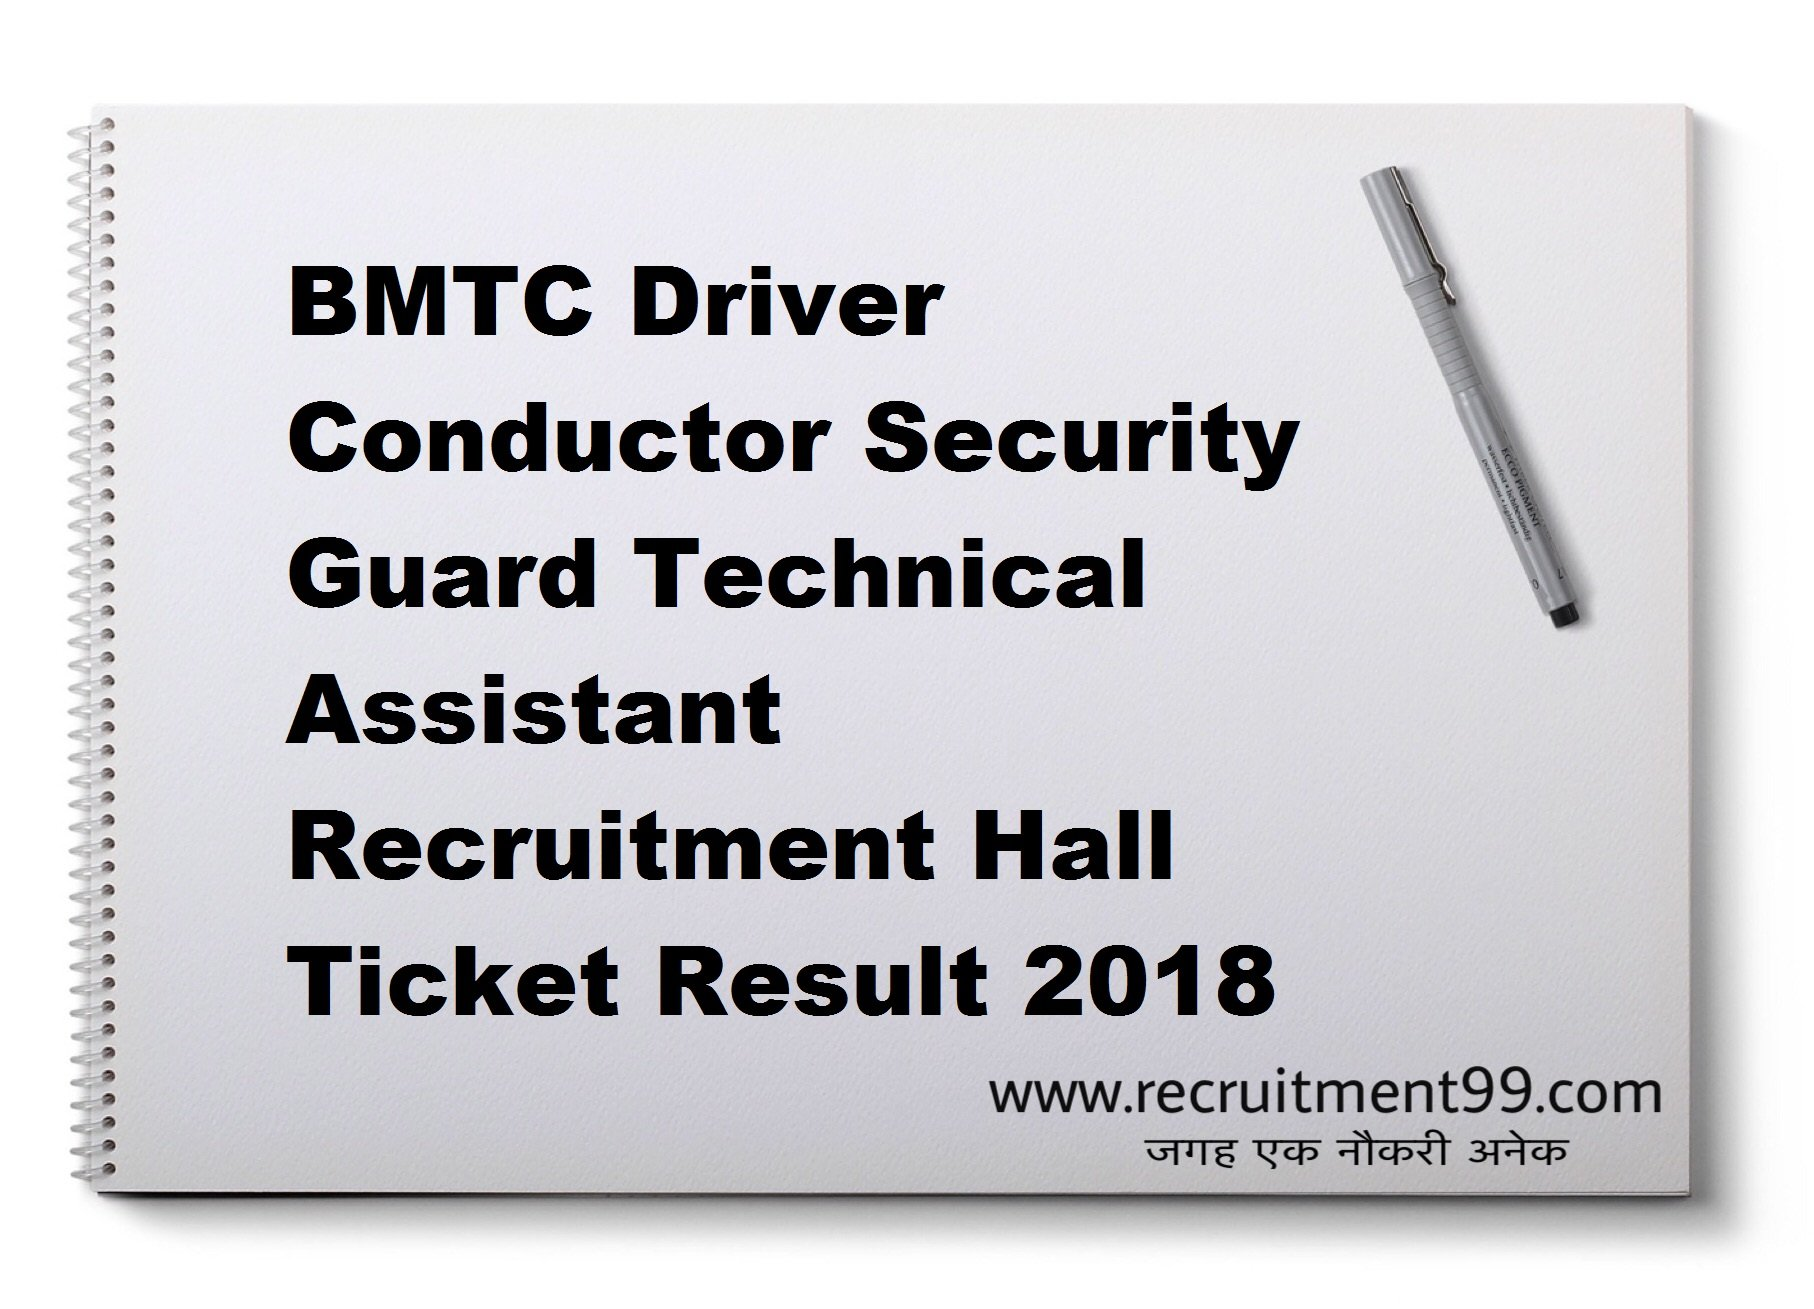 BMTC Driver Conductor Security Guard Technical Assistant Recruitment Hall Ticket Result 2018